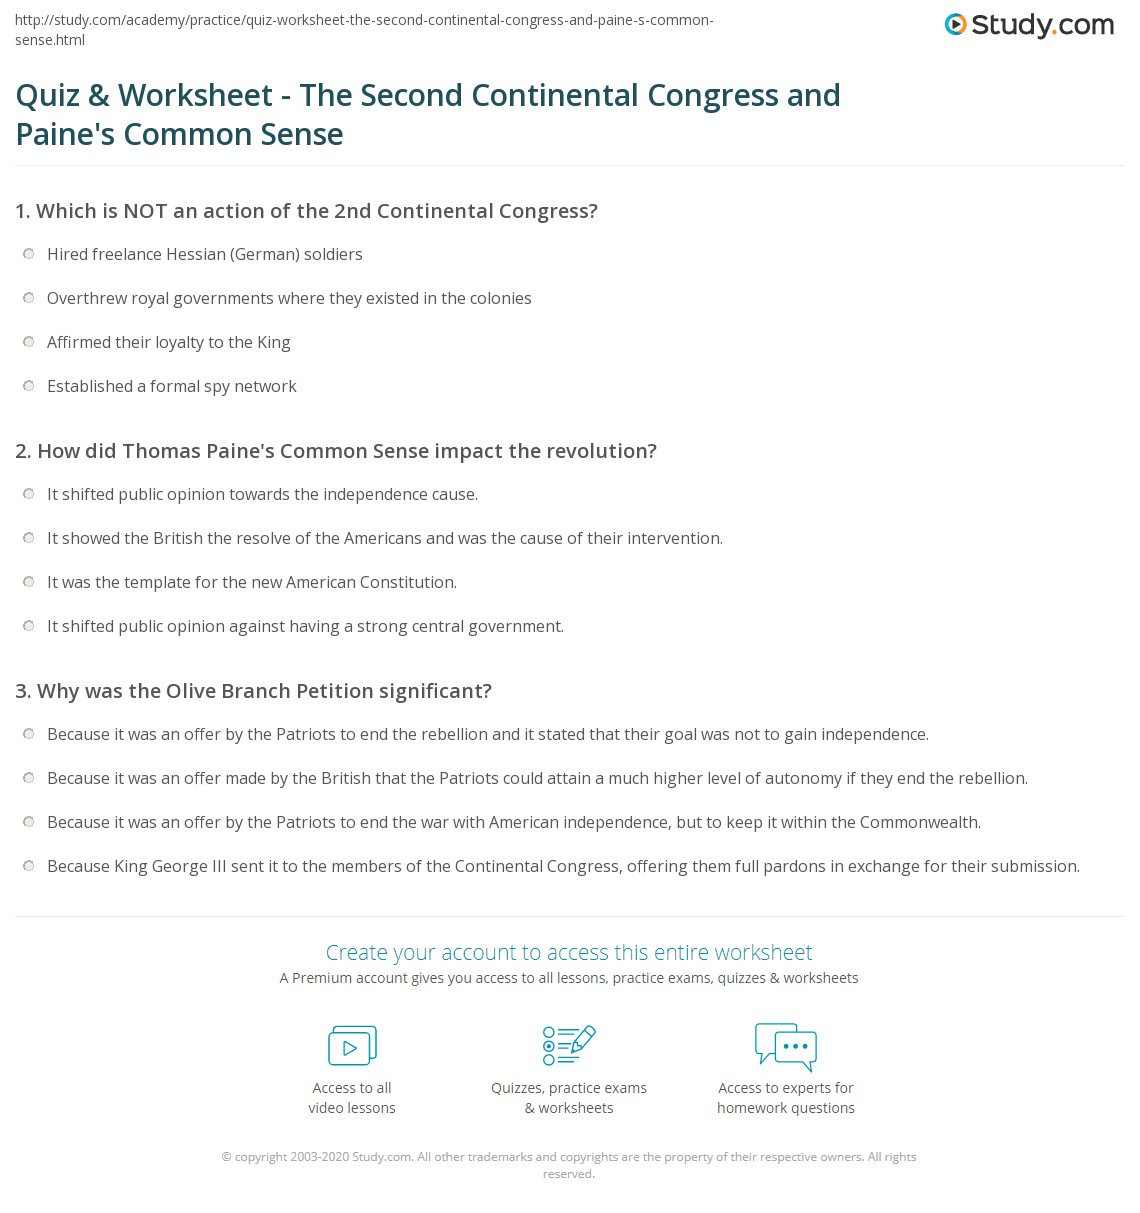 quiz worksheet the second continental congress and paine 39 s common sense. Black Bedroom Furniture Sets. Home Design Ideas